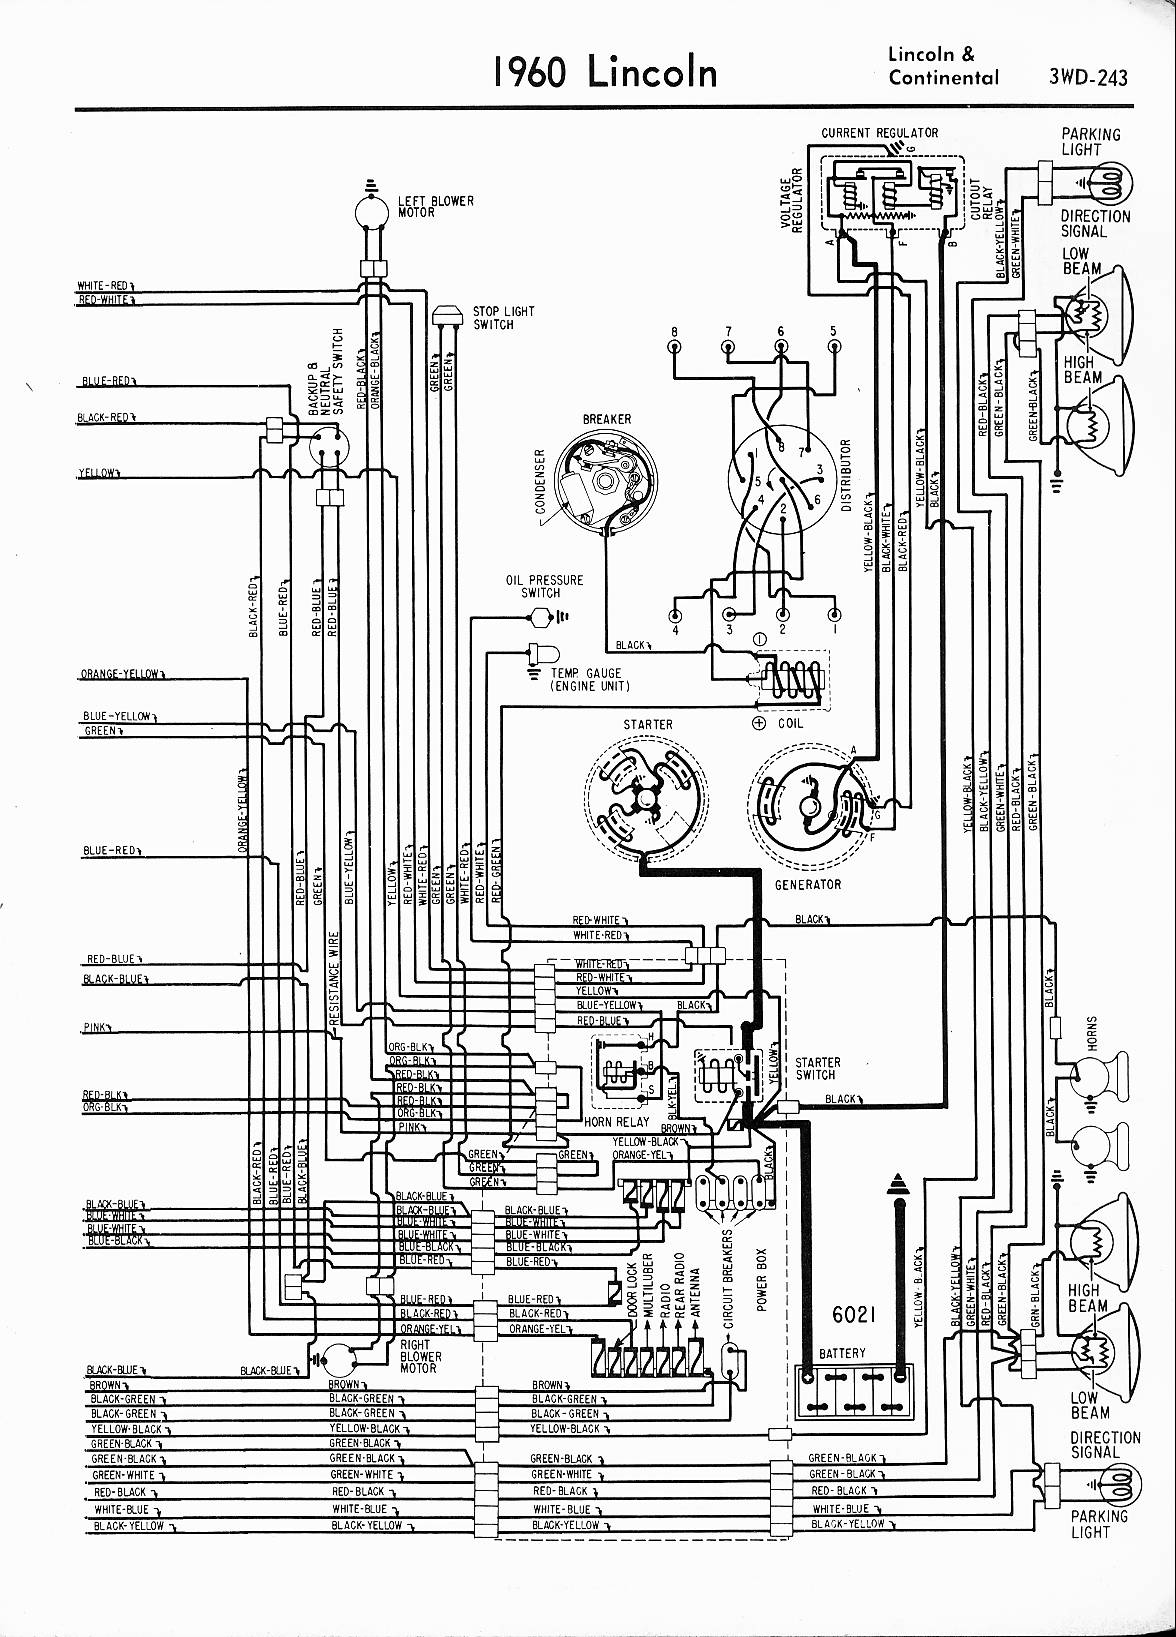 62 comet wiring diagram 1966 lincoln engine diagram. 1966. free printable wiring ... 62 lincoln engine diagram